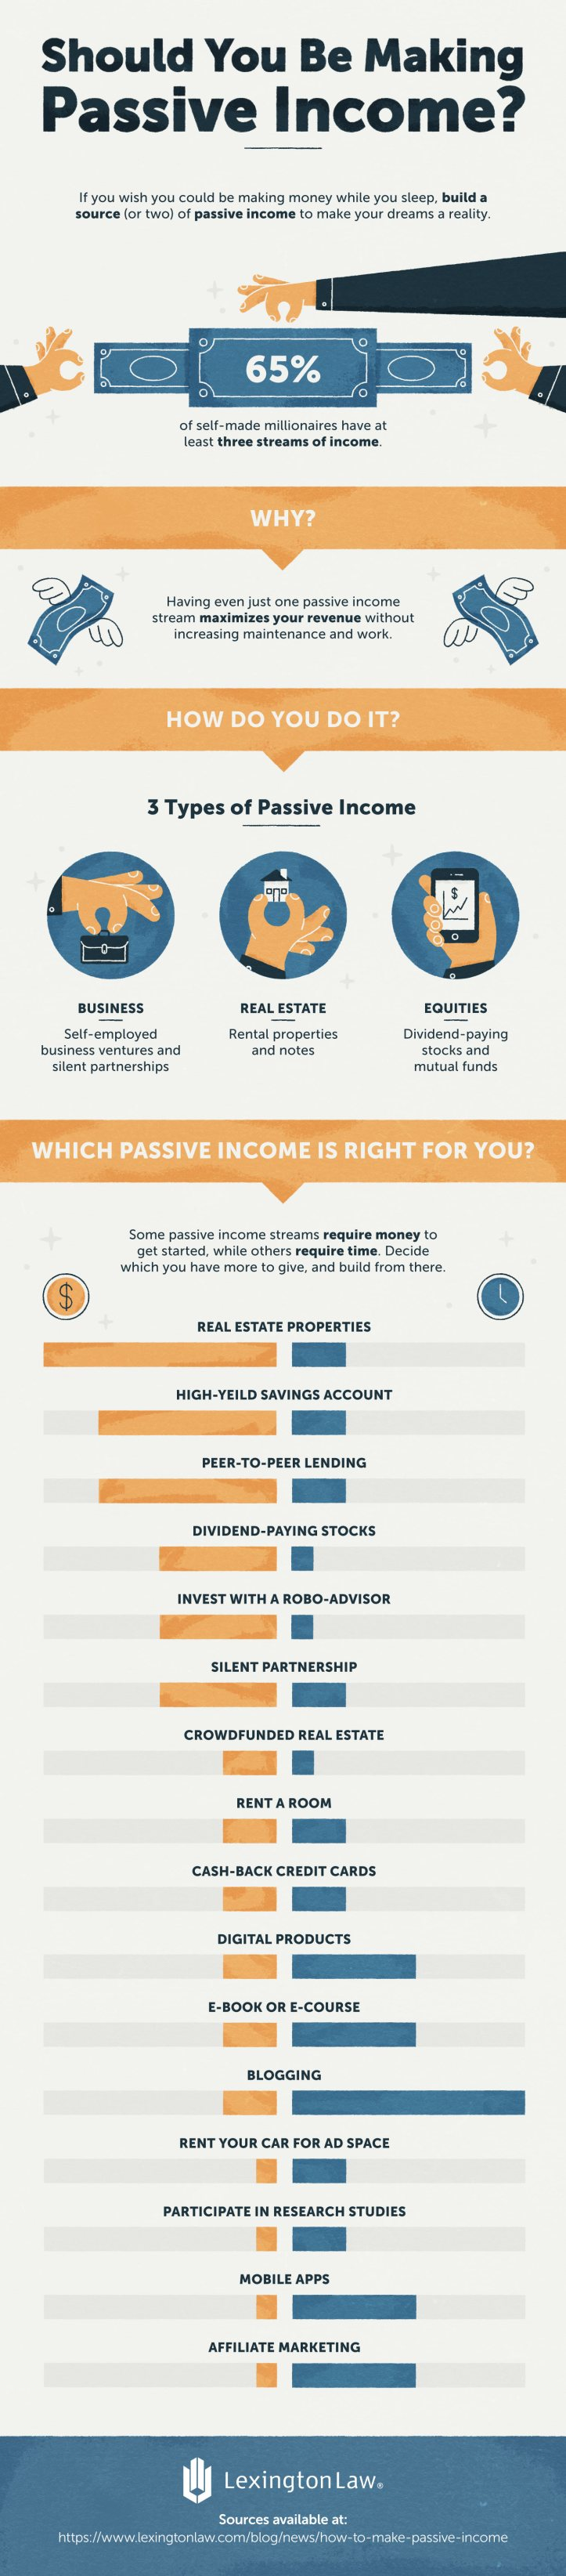 How to Make Passive Income & Why You Should